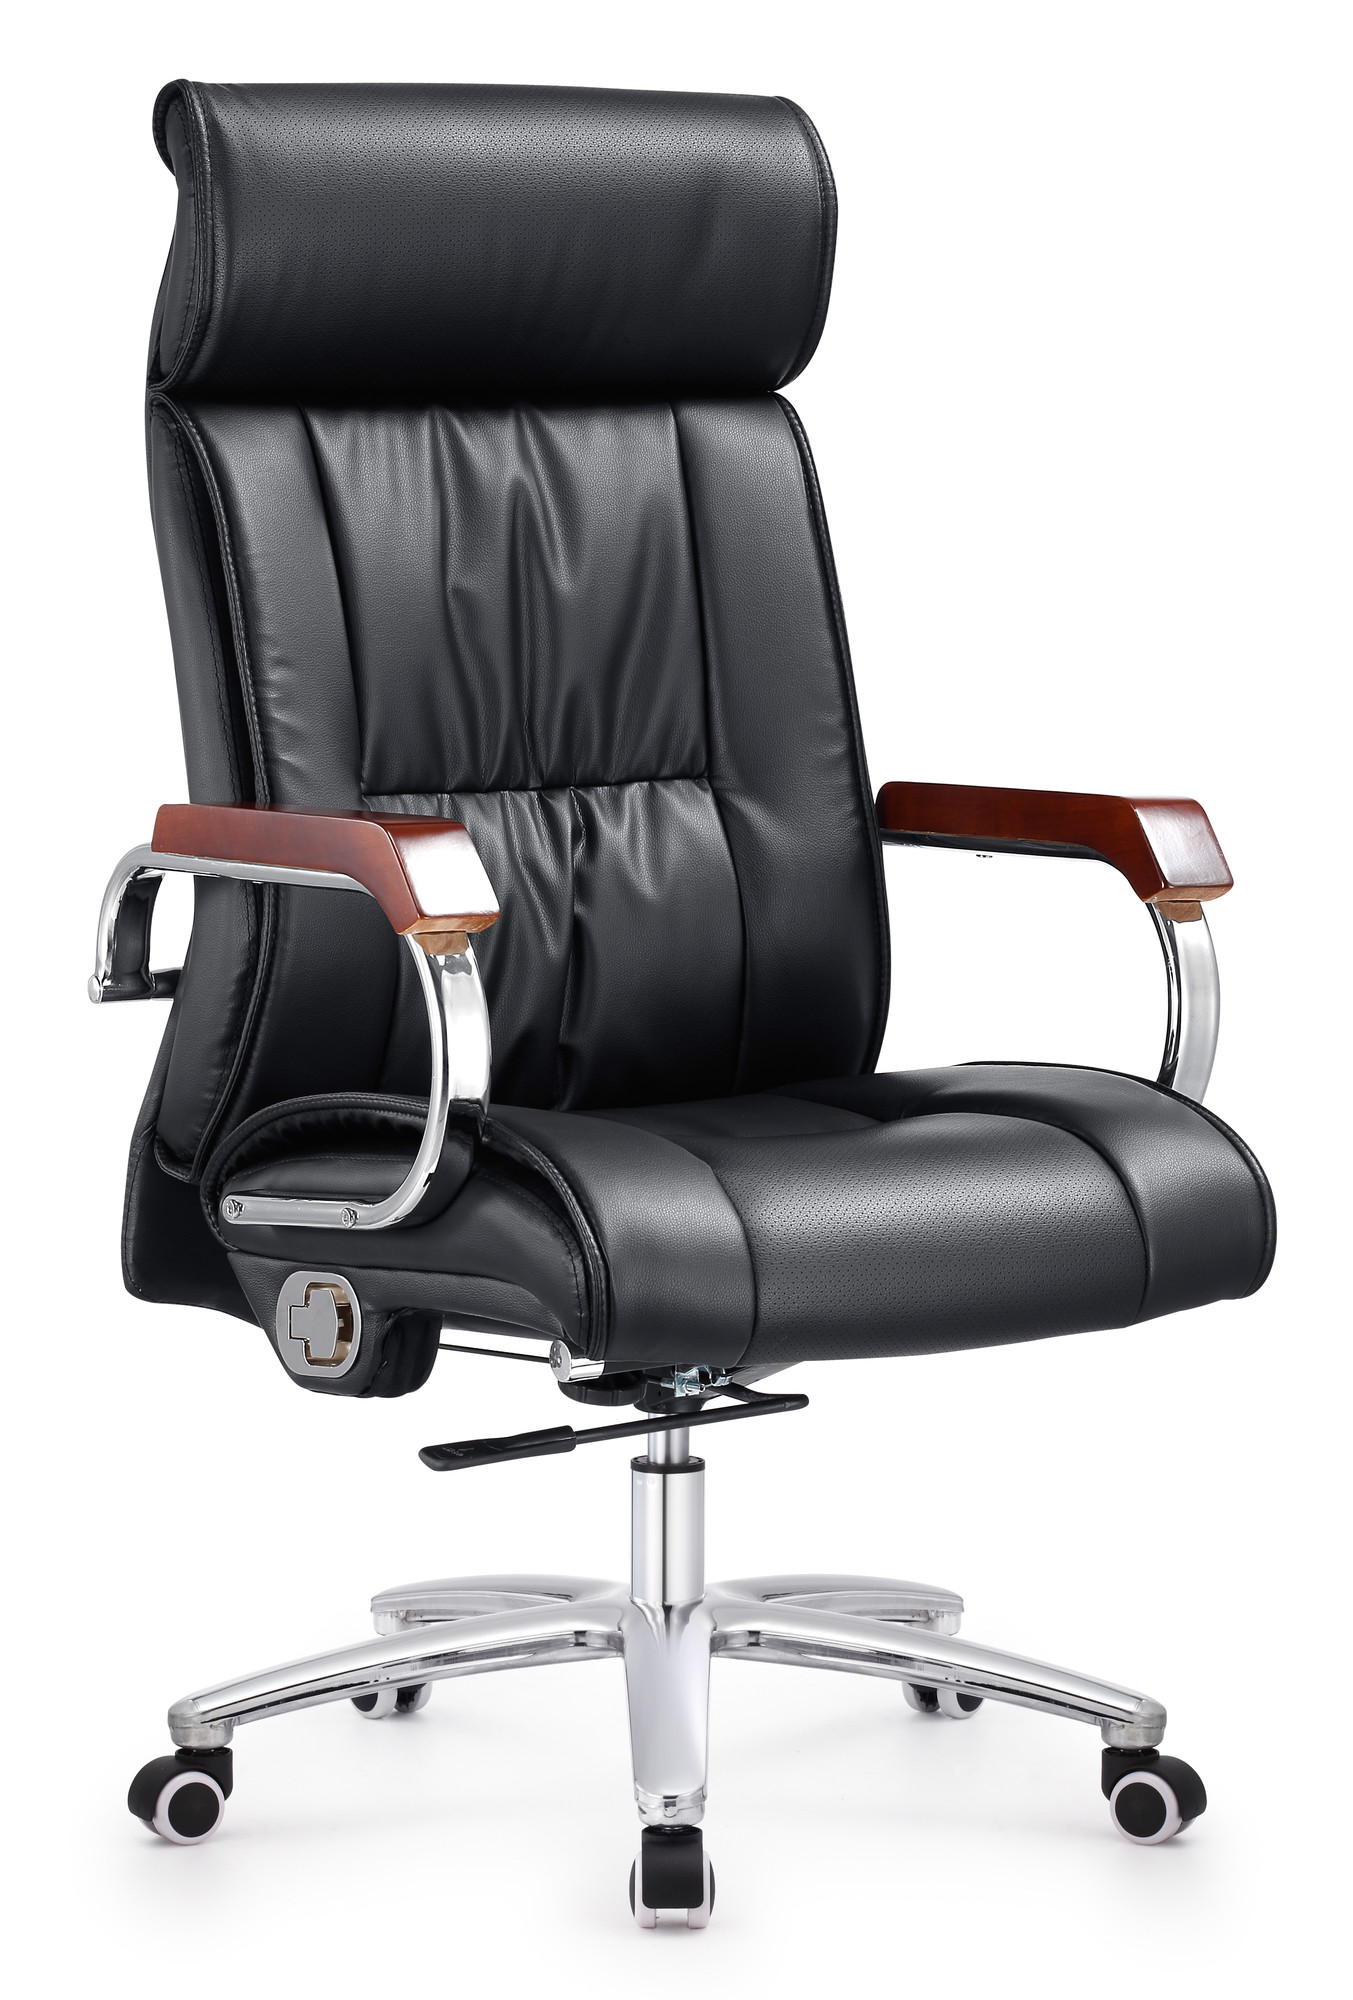 office chairs images. The Reagan Big U0026 Tall Office Chair Chairs Images